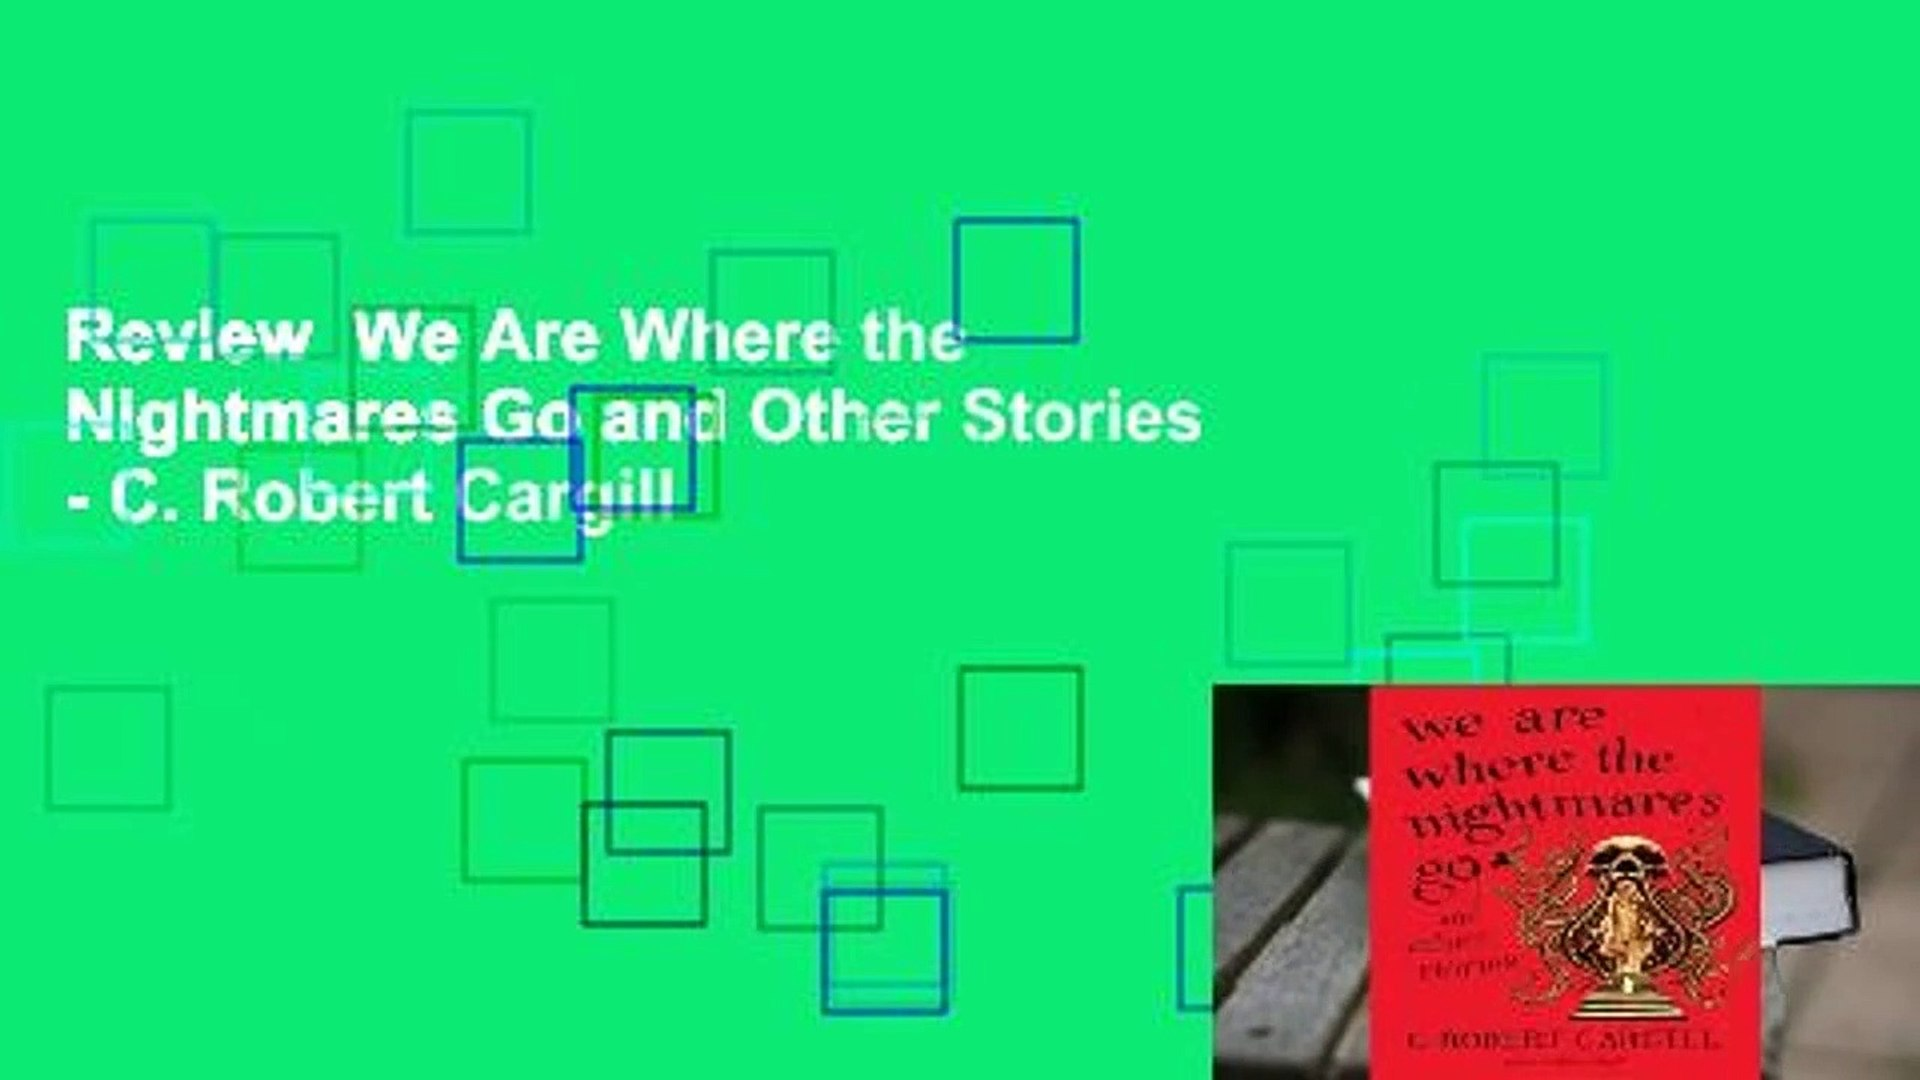 Review  We Are Where the Nightmares Go and Other Stories - C. Robert Cargill